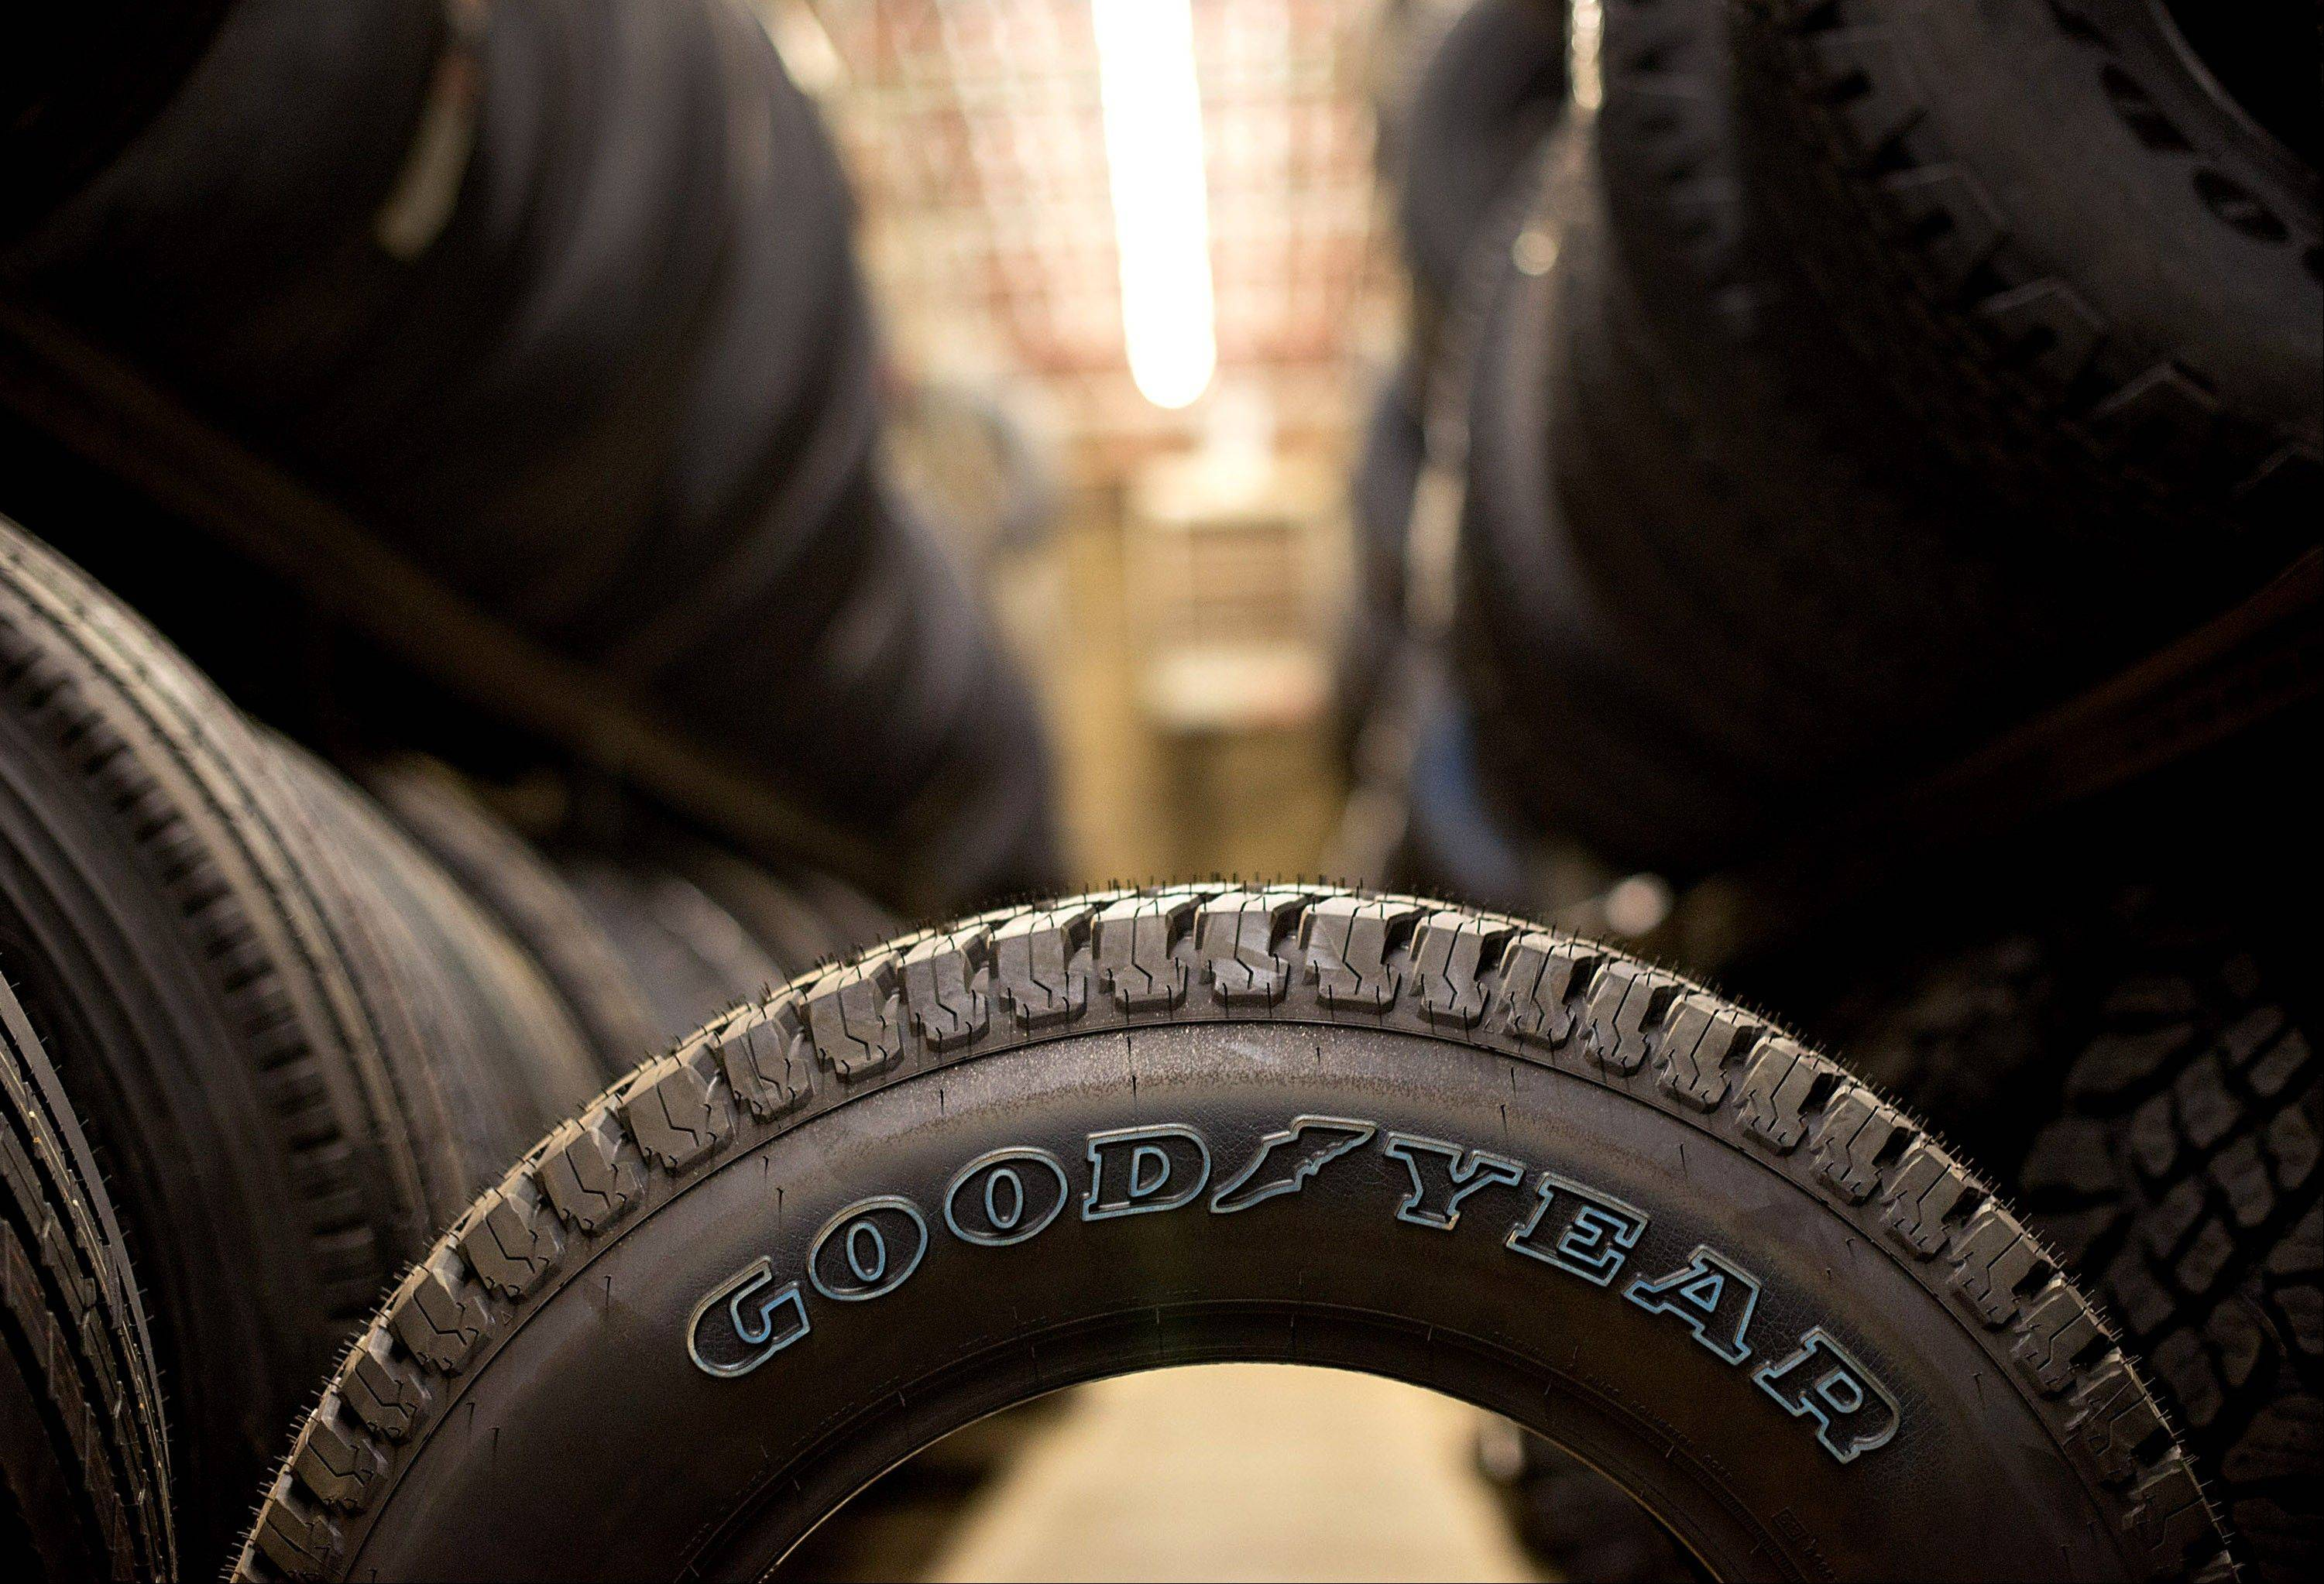 Goodyear Tire & Rubber Co. vehicle tires sit in a storage room at Keister�s Tire Center in Kewanee, Ill. The company�s stock fell 10 percent on Friday.